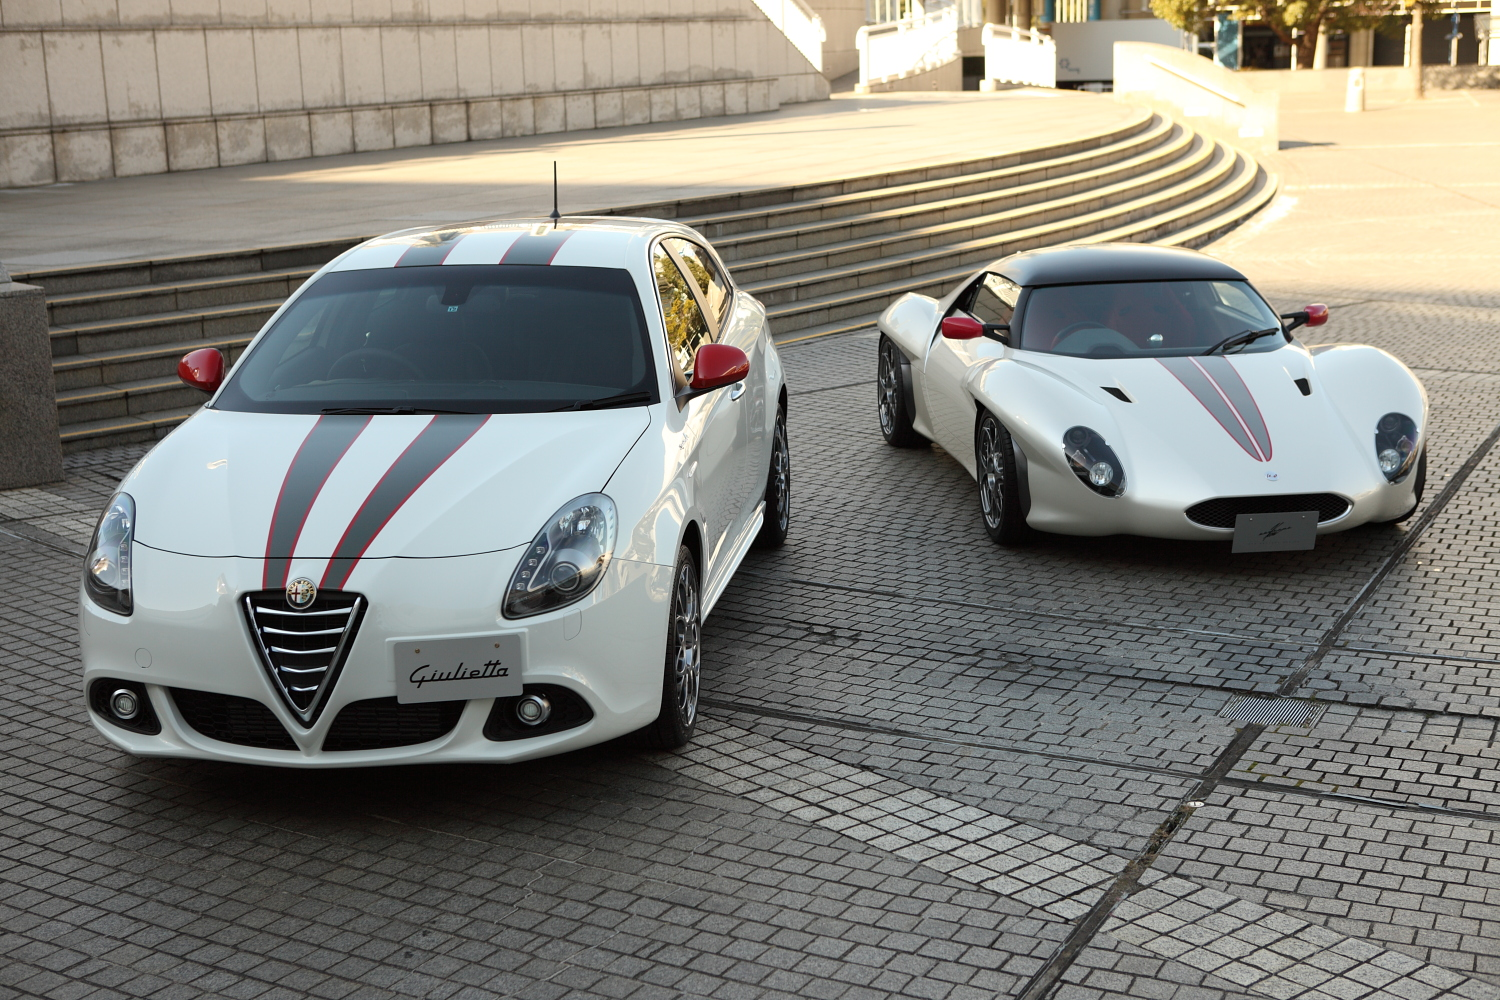 Ken Okuyama Designs Two Special Edition Alfa Romeo